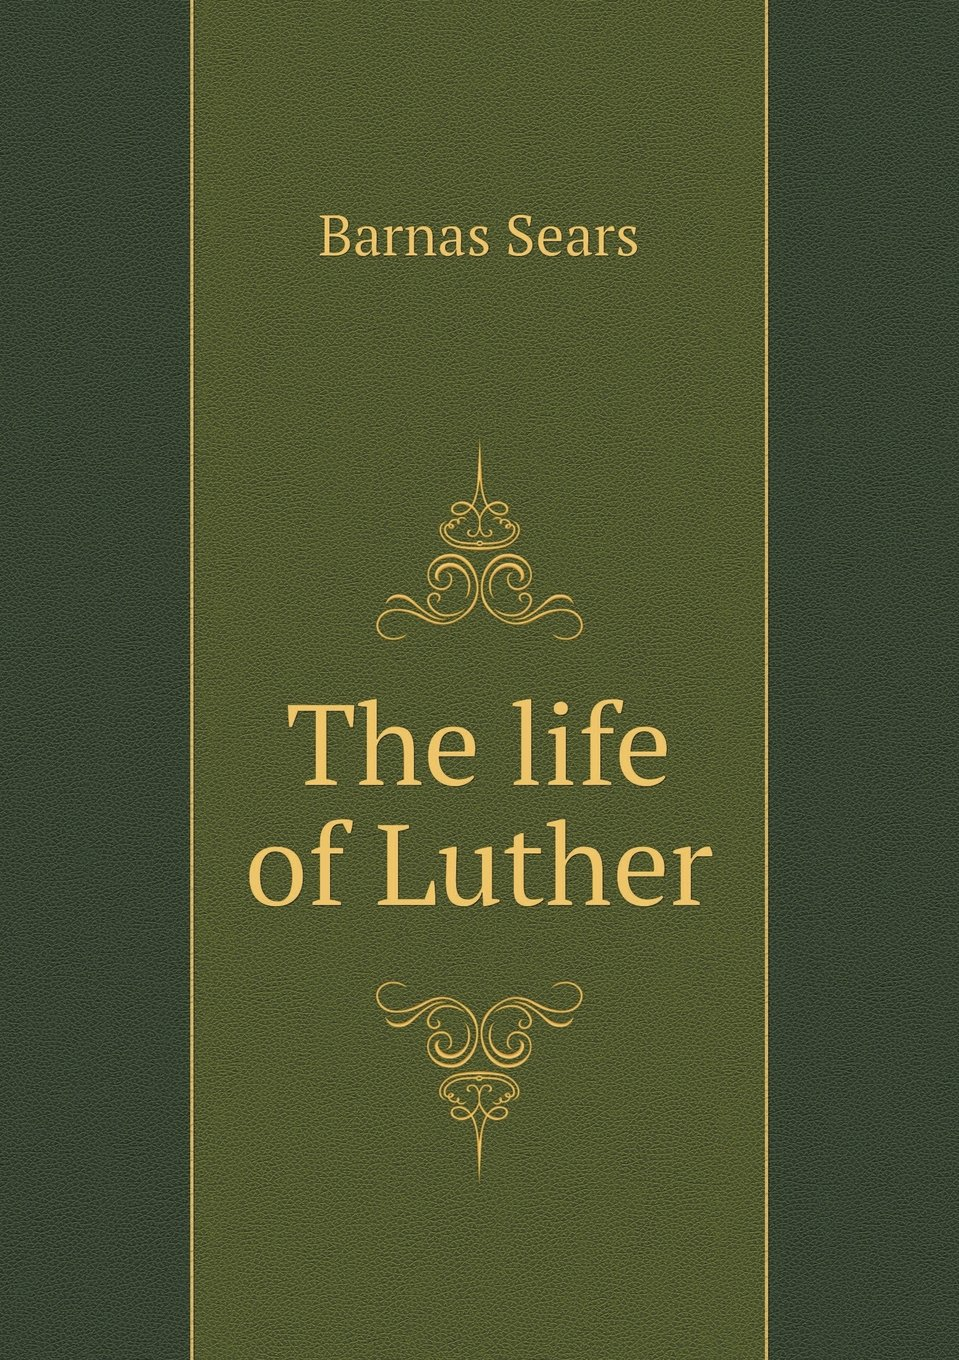 The life of Luther ebook